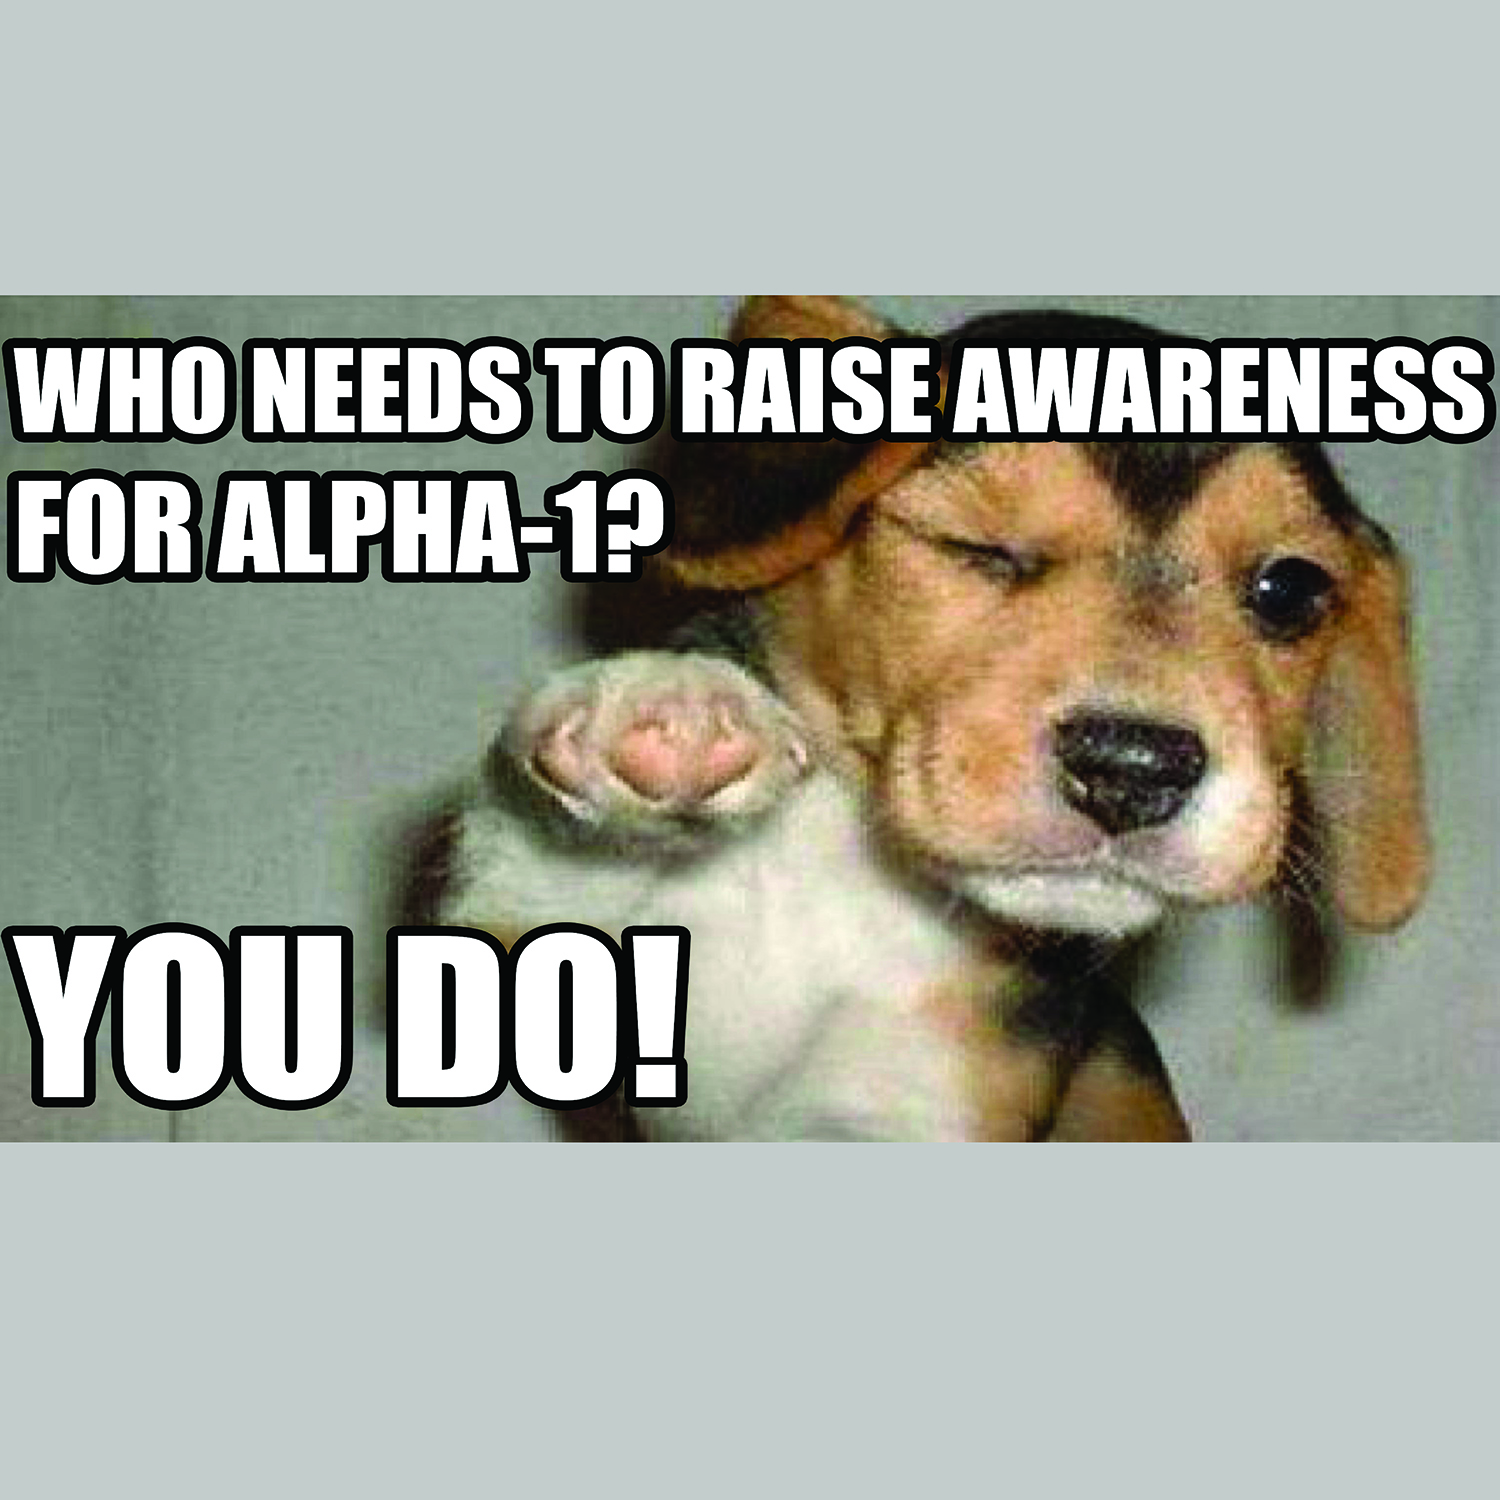 November is Alpha-1 Awareness Month